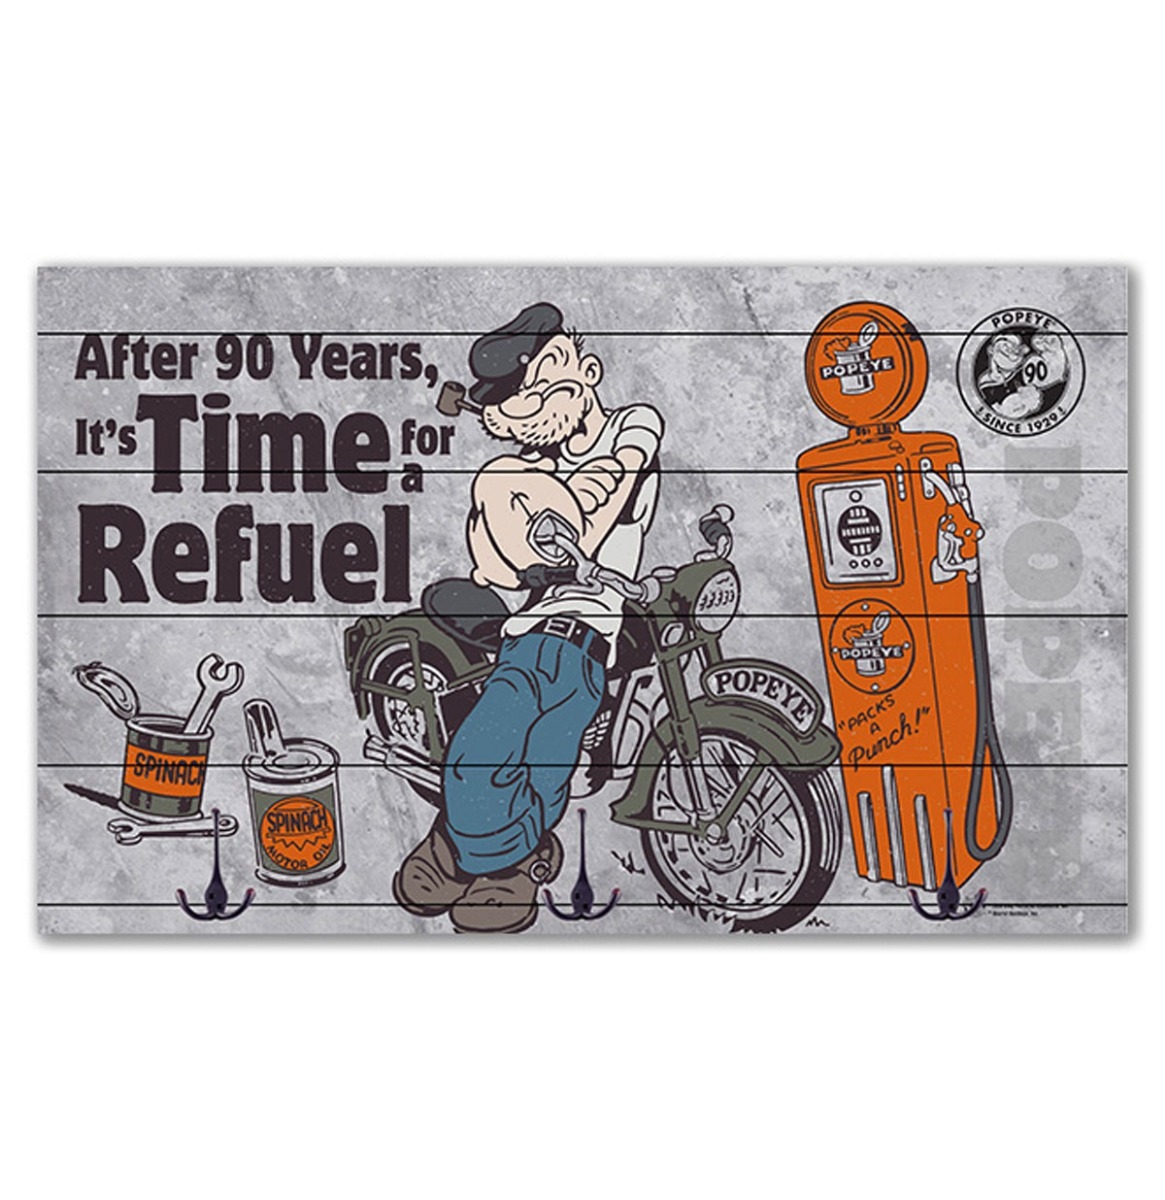 Popeye - After 90 Years It's Time For A Refuel Houten Kapstok - 50 x 30 cm